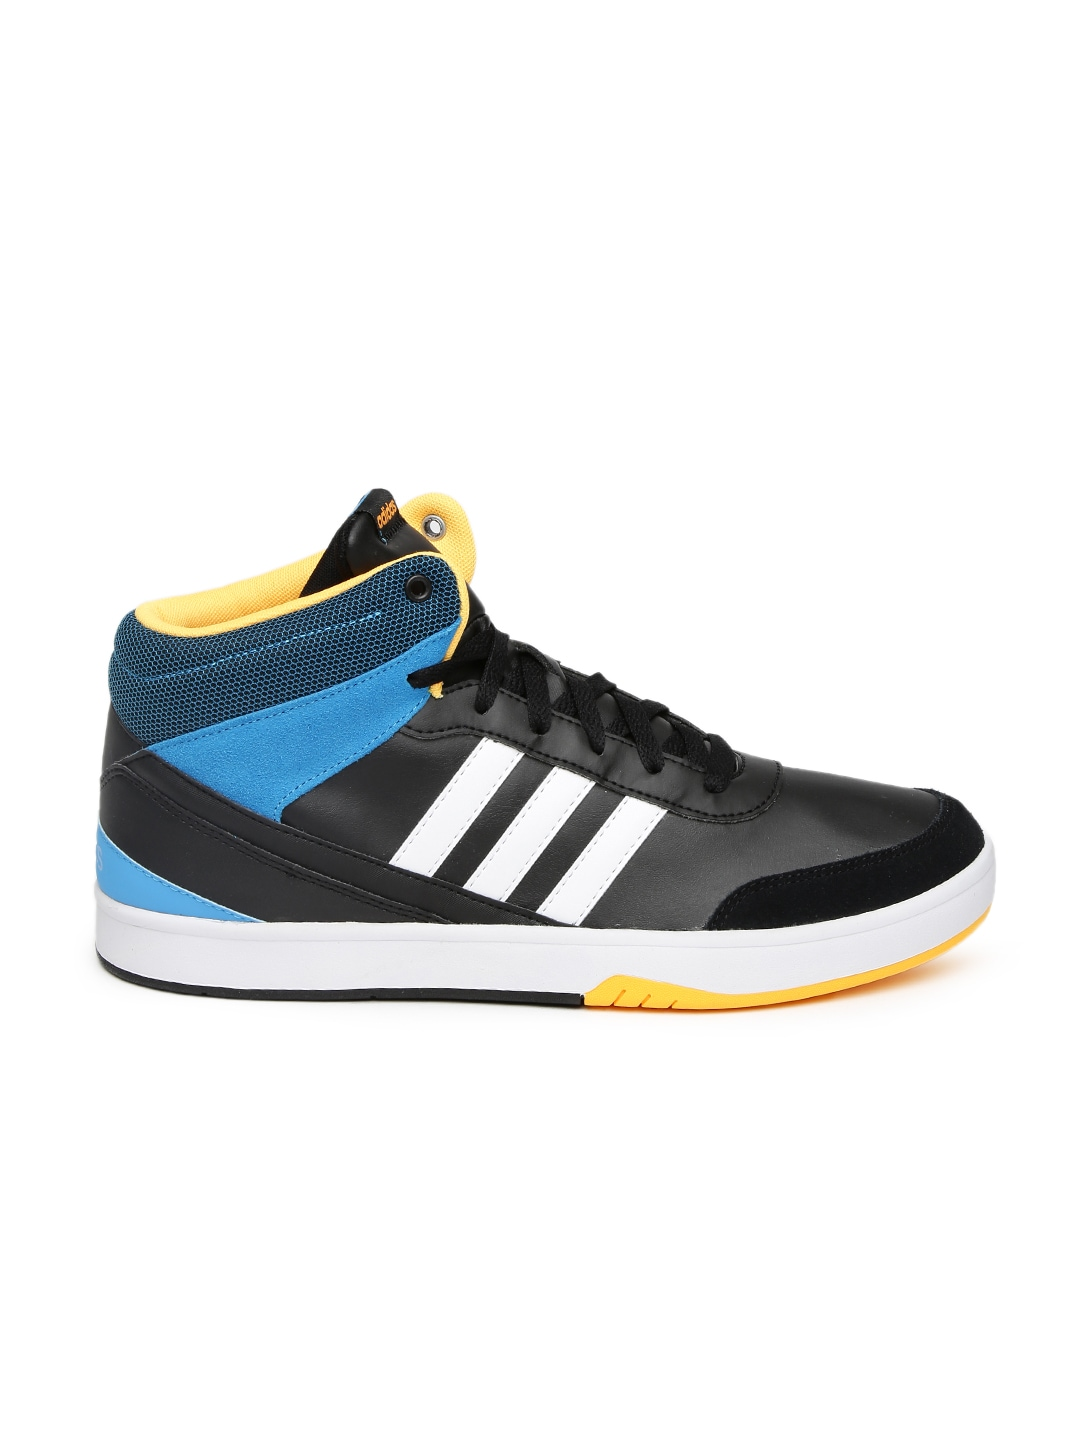 Adidas Neo Black And Yellow